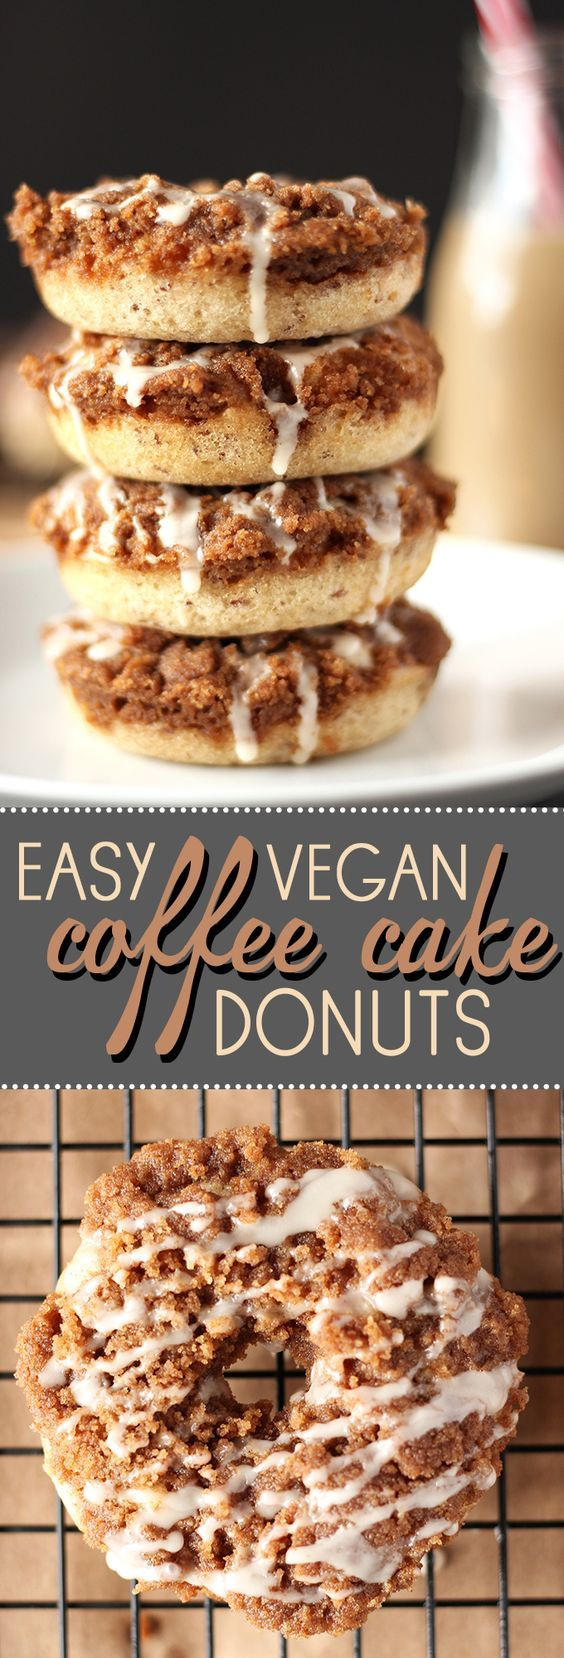 Coffee cake and doughnuts collide in these amazing vegan treats from food blog Sweet Like Cocoa.